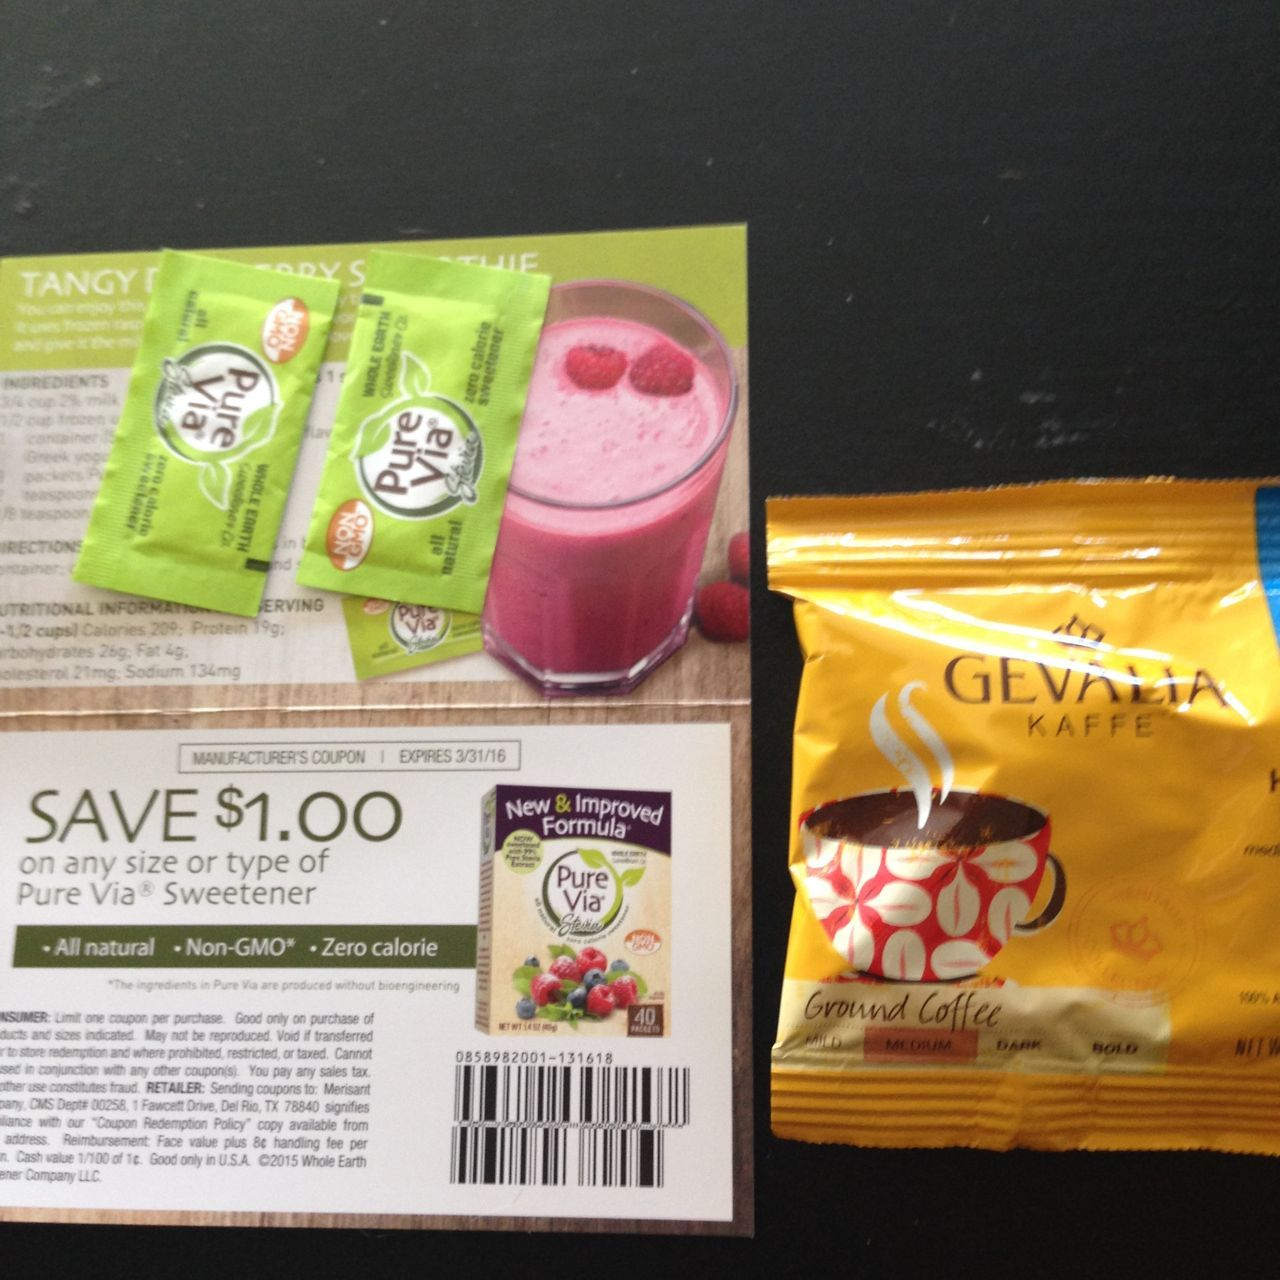 samples from Pinch Me: Pure Via and Gevalia #freestuff #freebies #samples #free